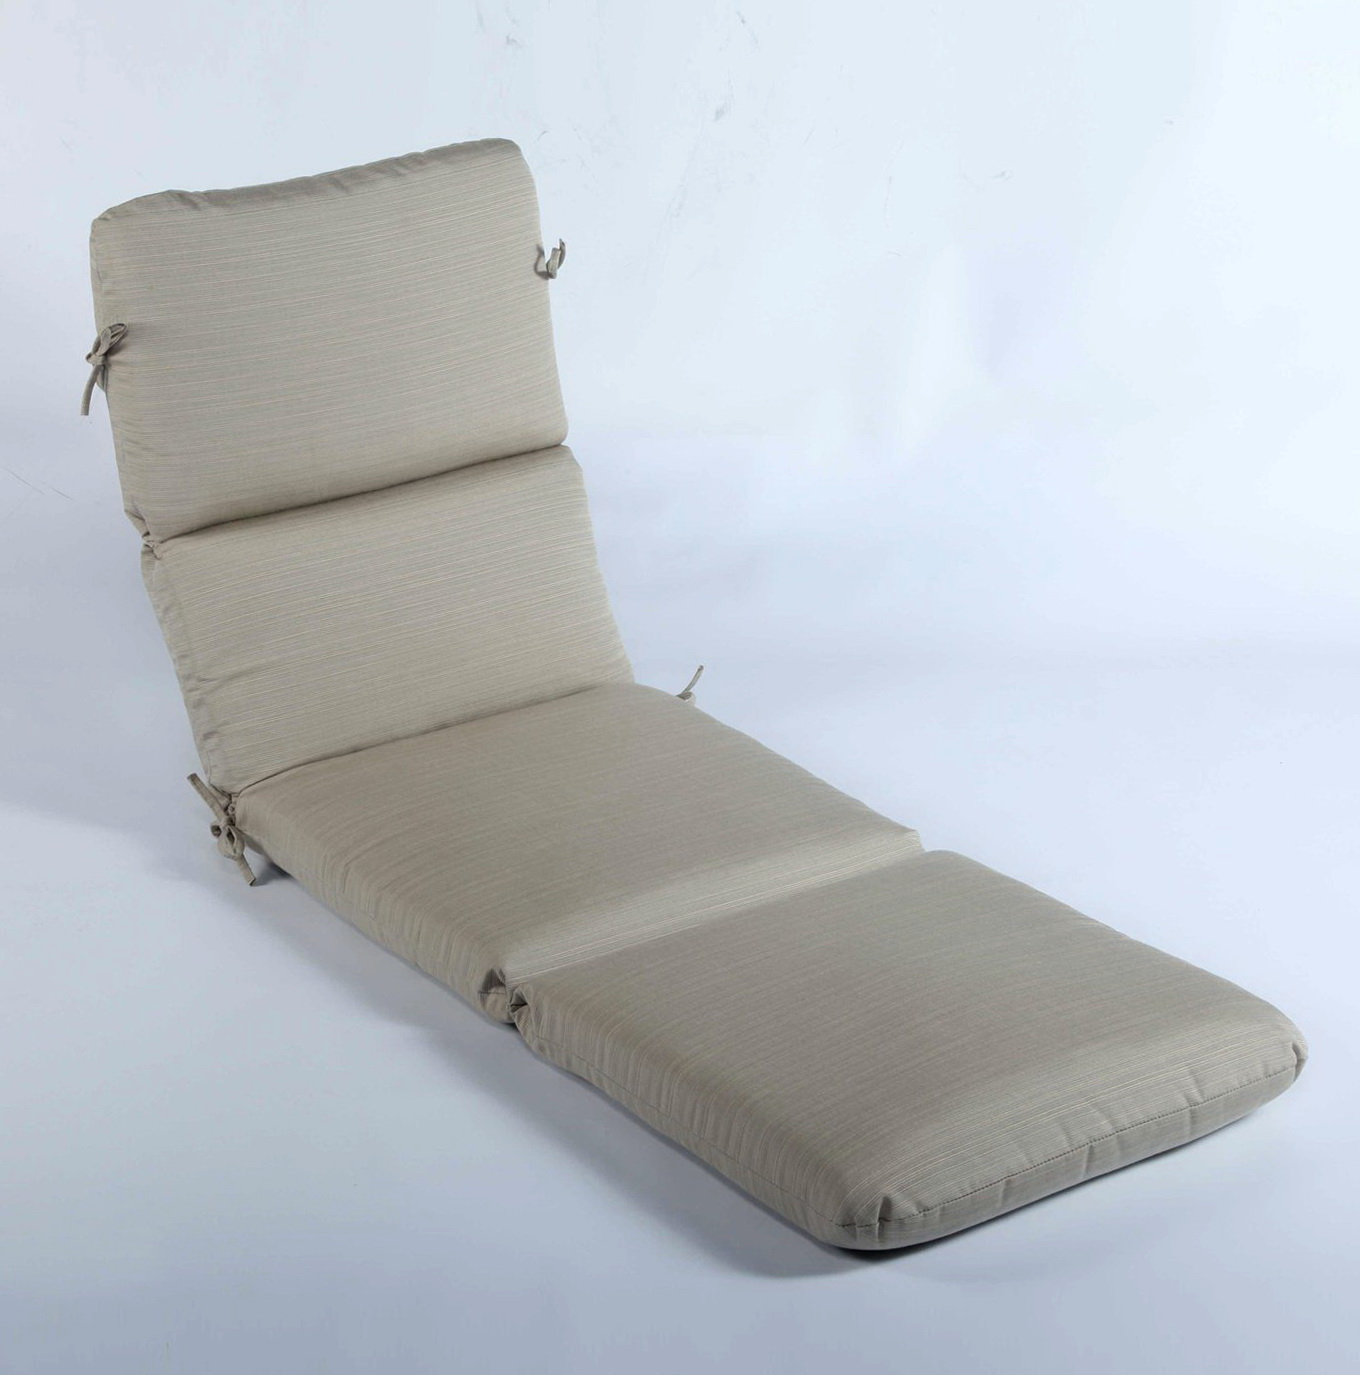 Chaise lounge replacement cushions sunbrella home design for Chaise longue cushions